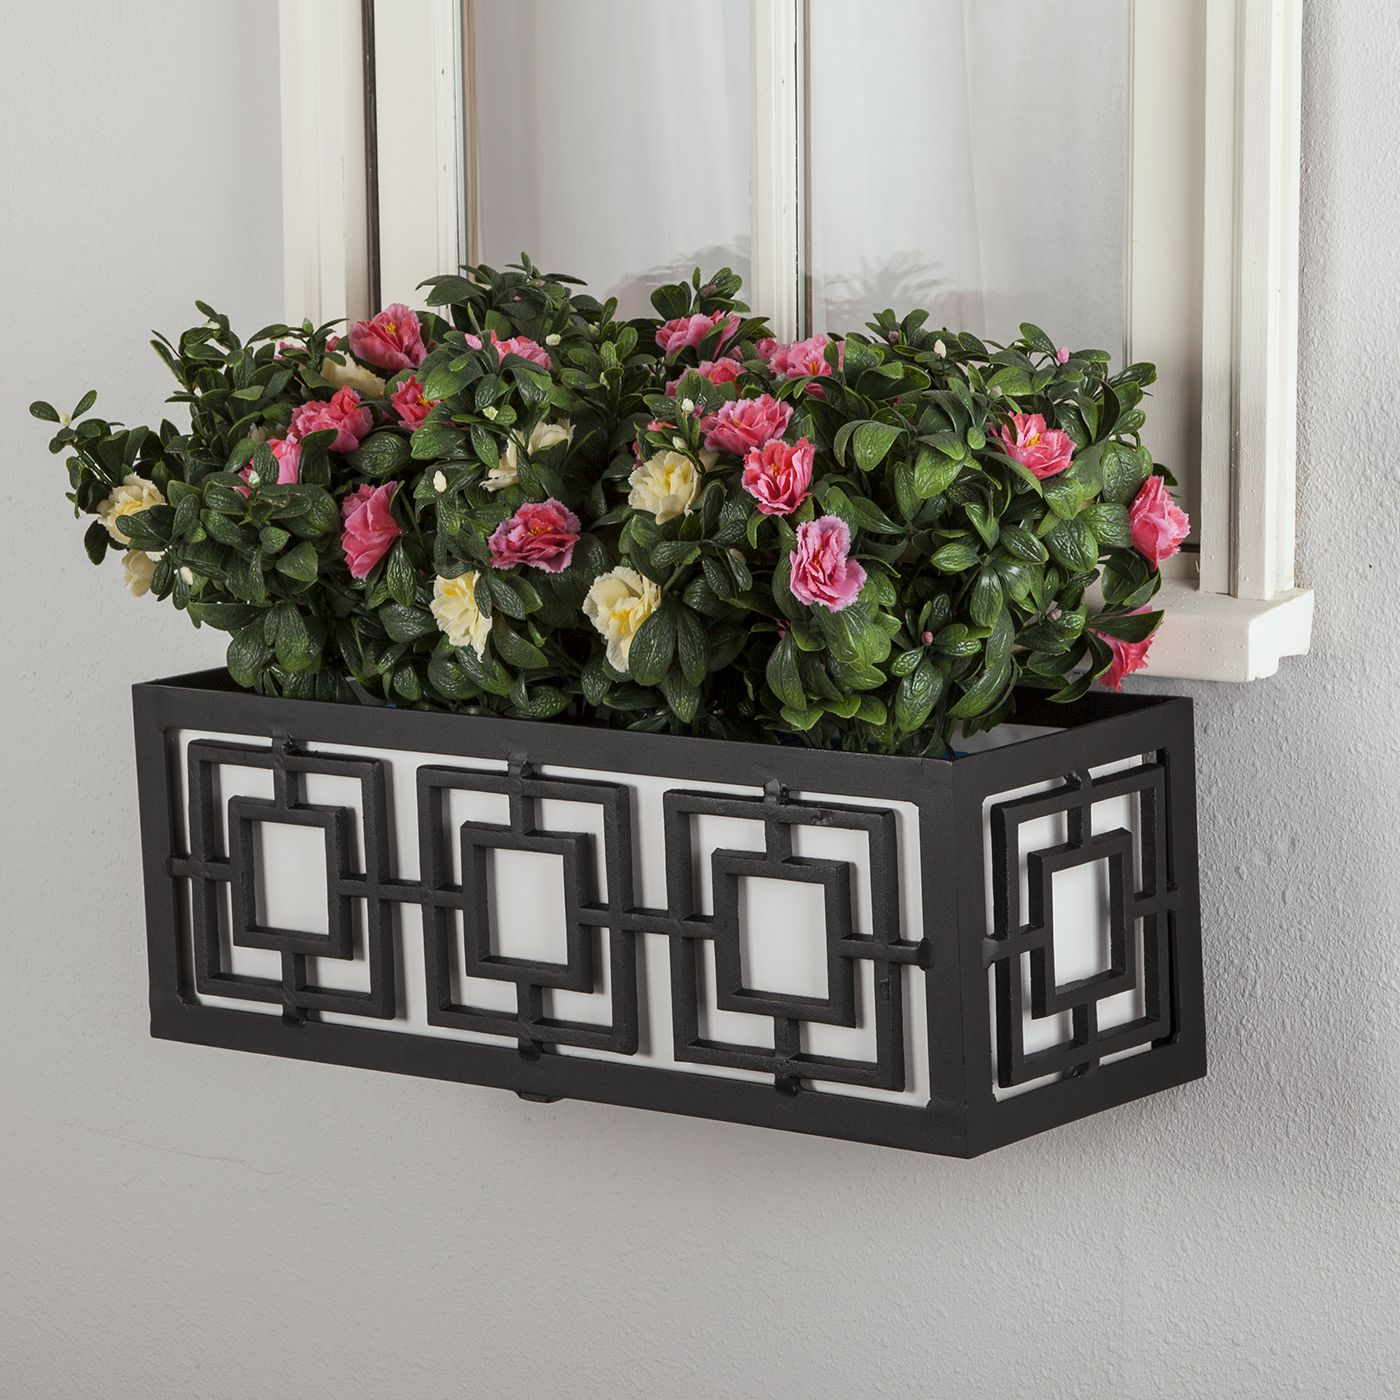 Metal Planter Boxes Geometric Metal Flower Boxes Planters Hooks And Lattice